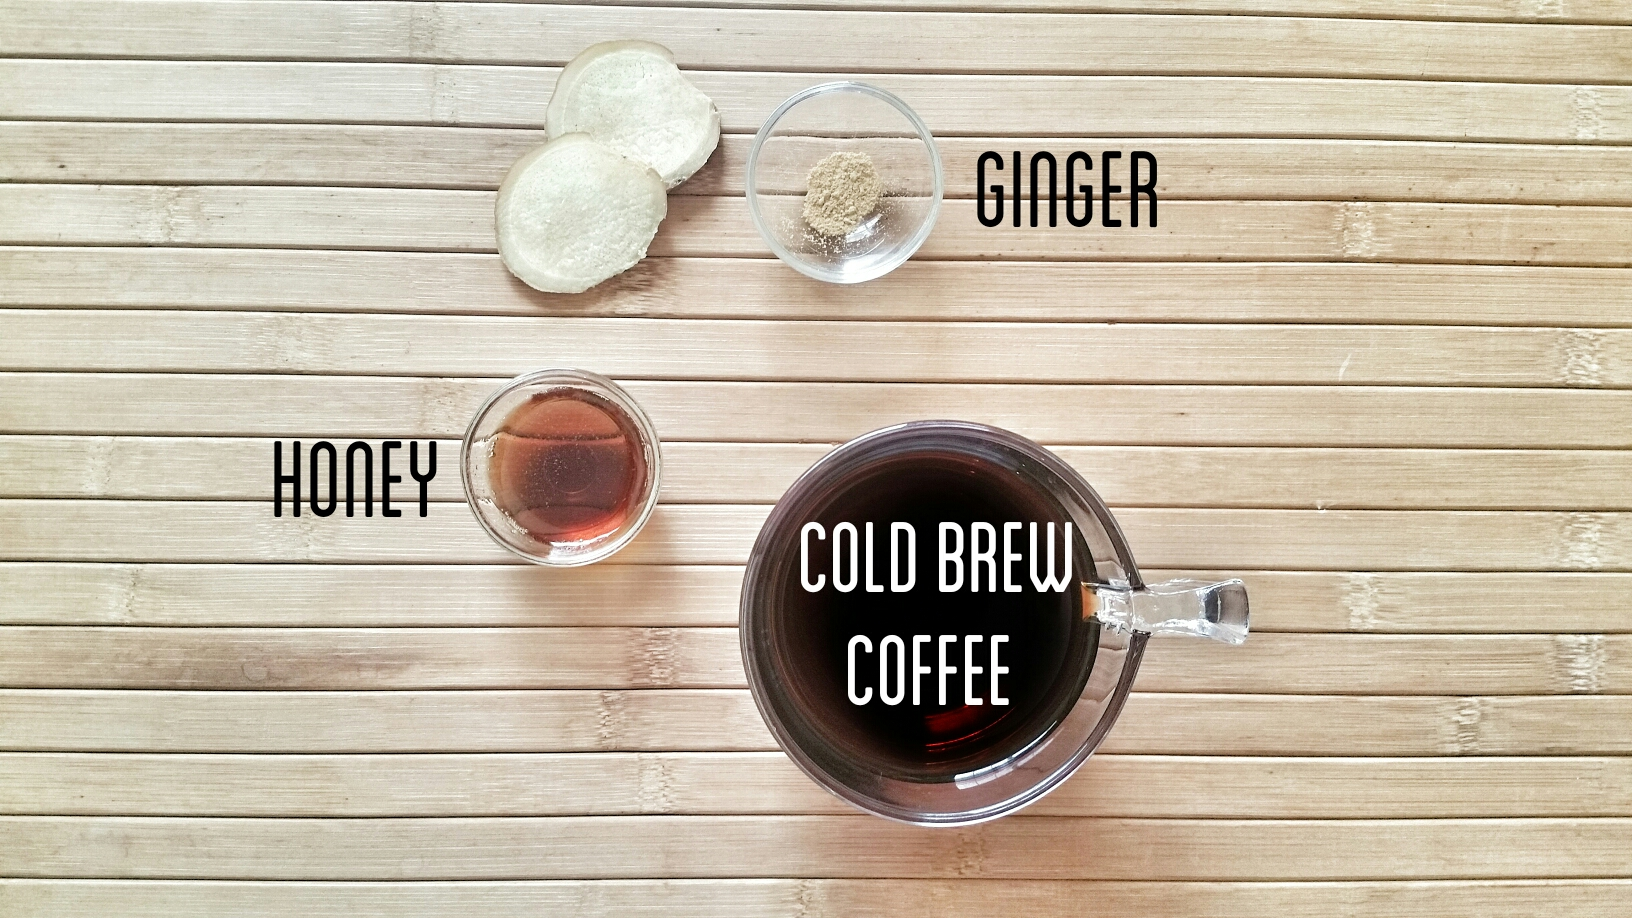 Ginger and honey in cold brew coffee